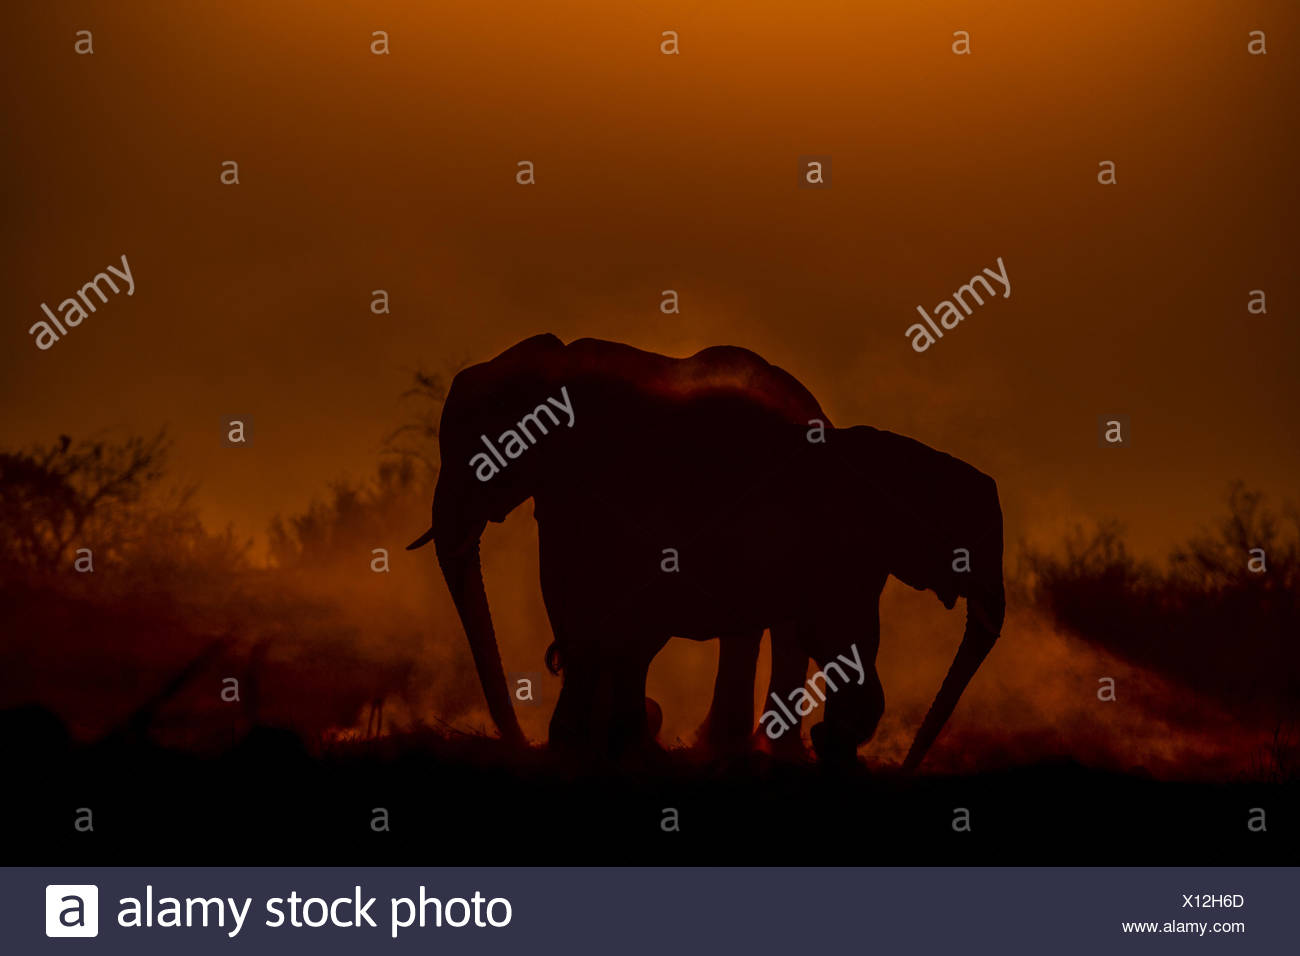 Two elephants, Loxodonta africana, dusting as the sun sets. - Stock Image